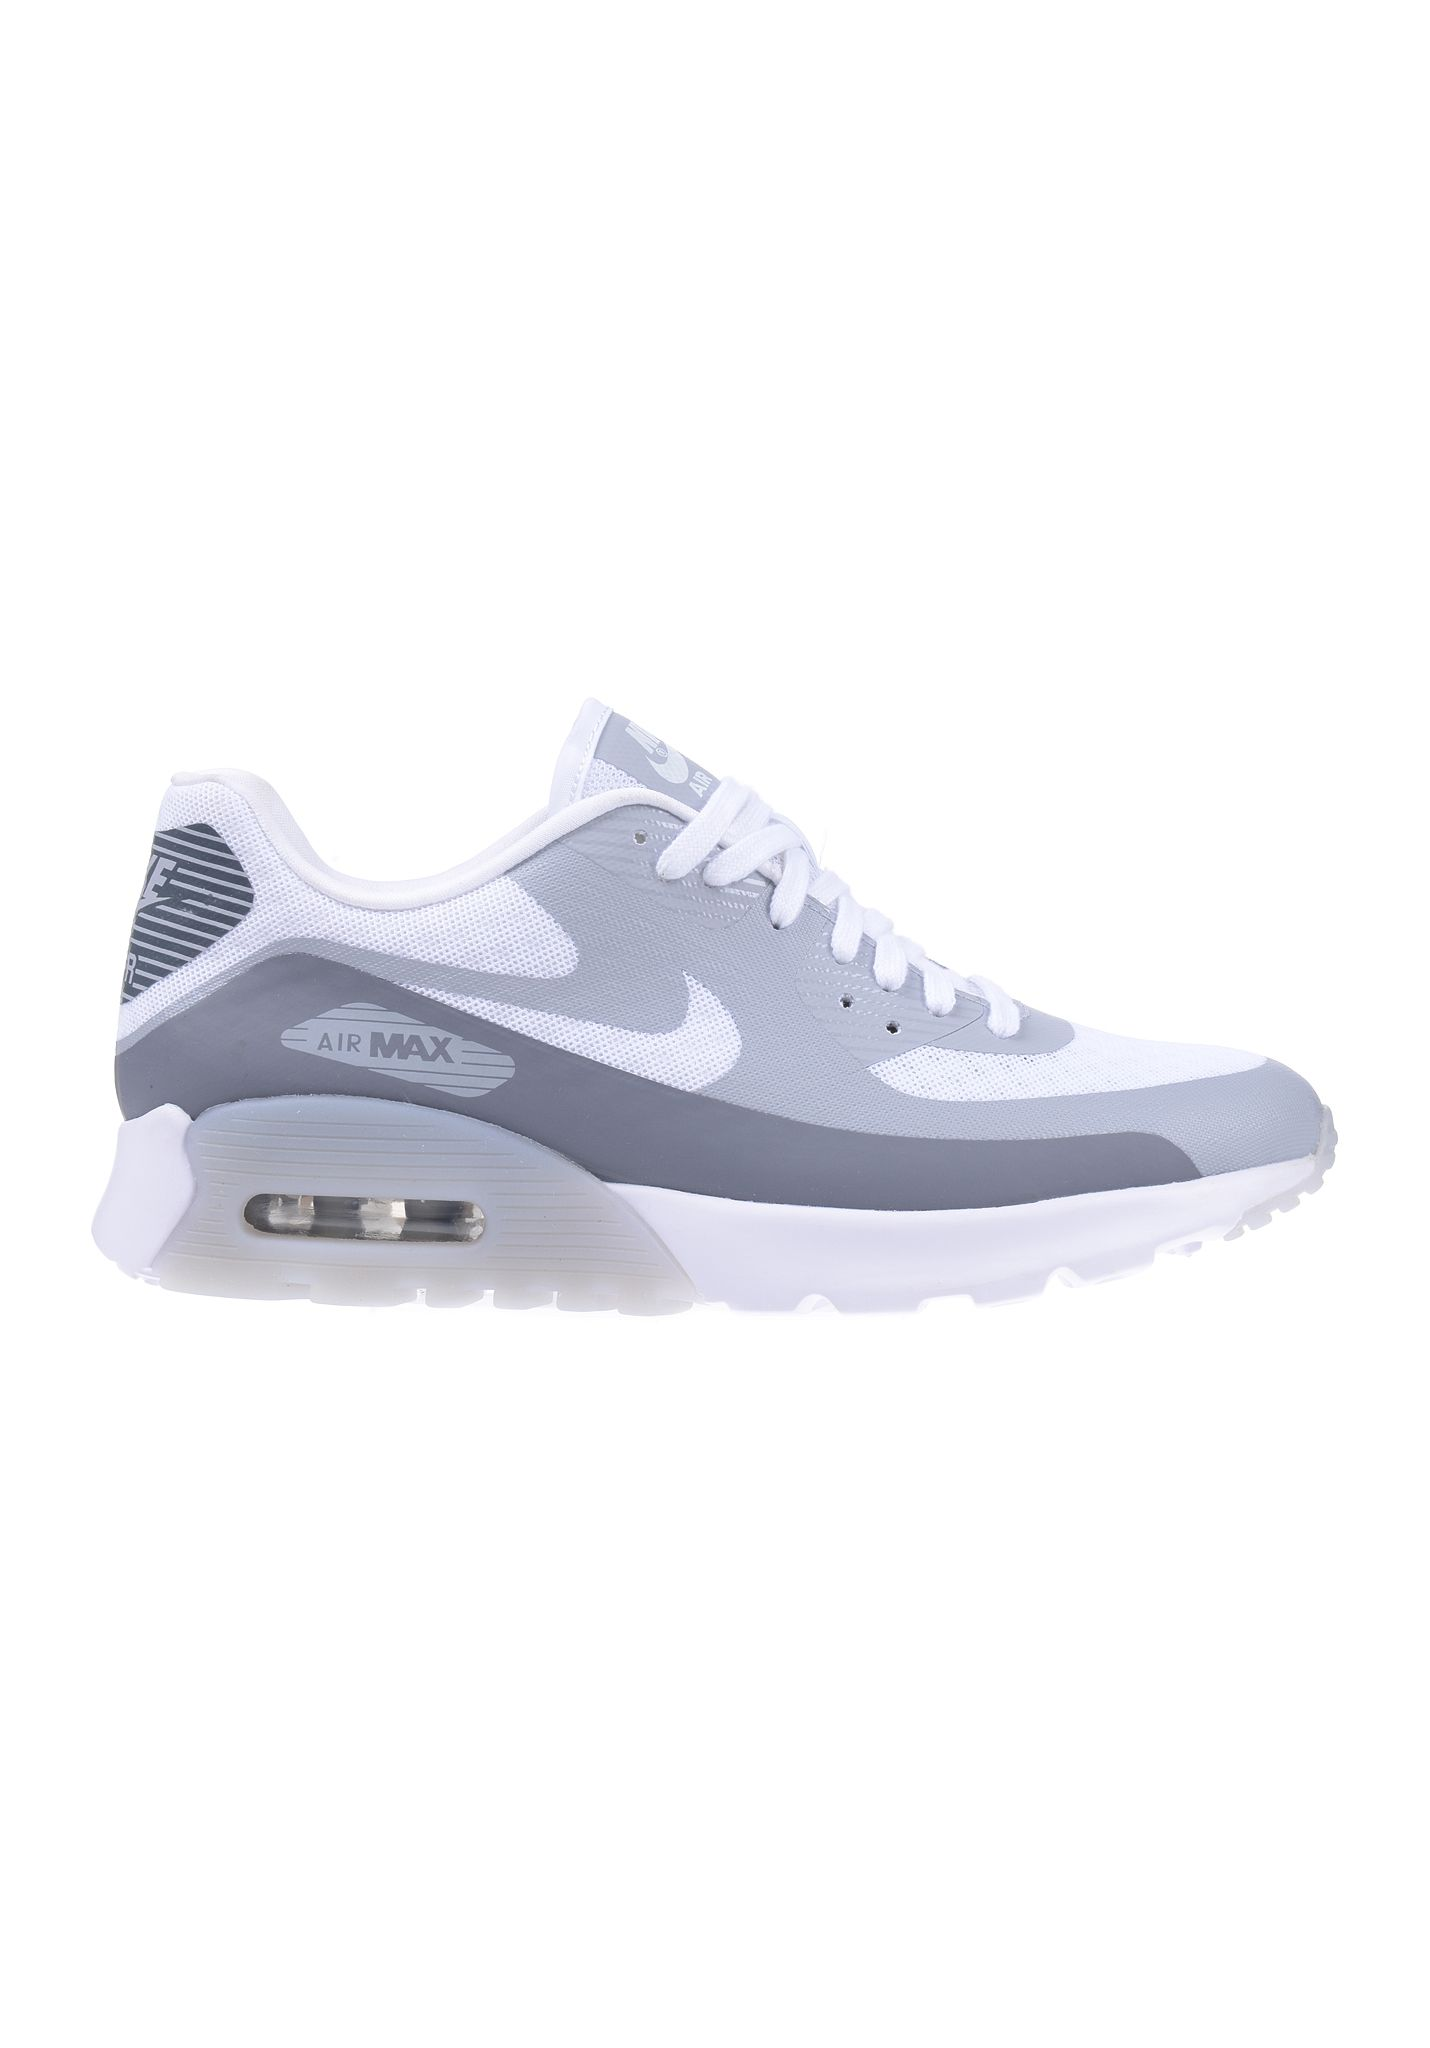 new concept 9b147 8adb7 NIKE SPORTSWEAR Air Max 90 Ultra BR - Sneaker für Damen - Weiß - Planet  Sports